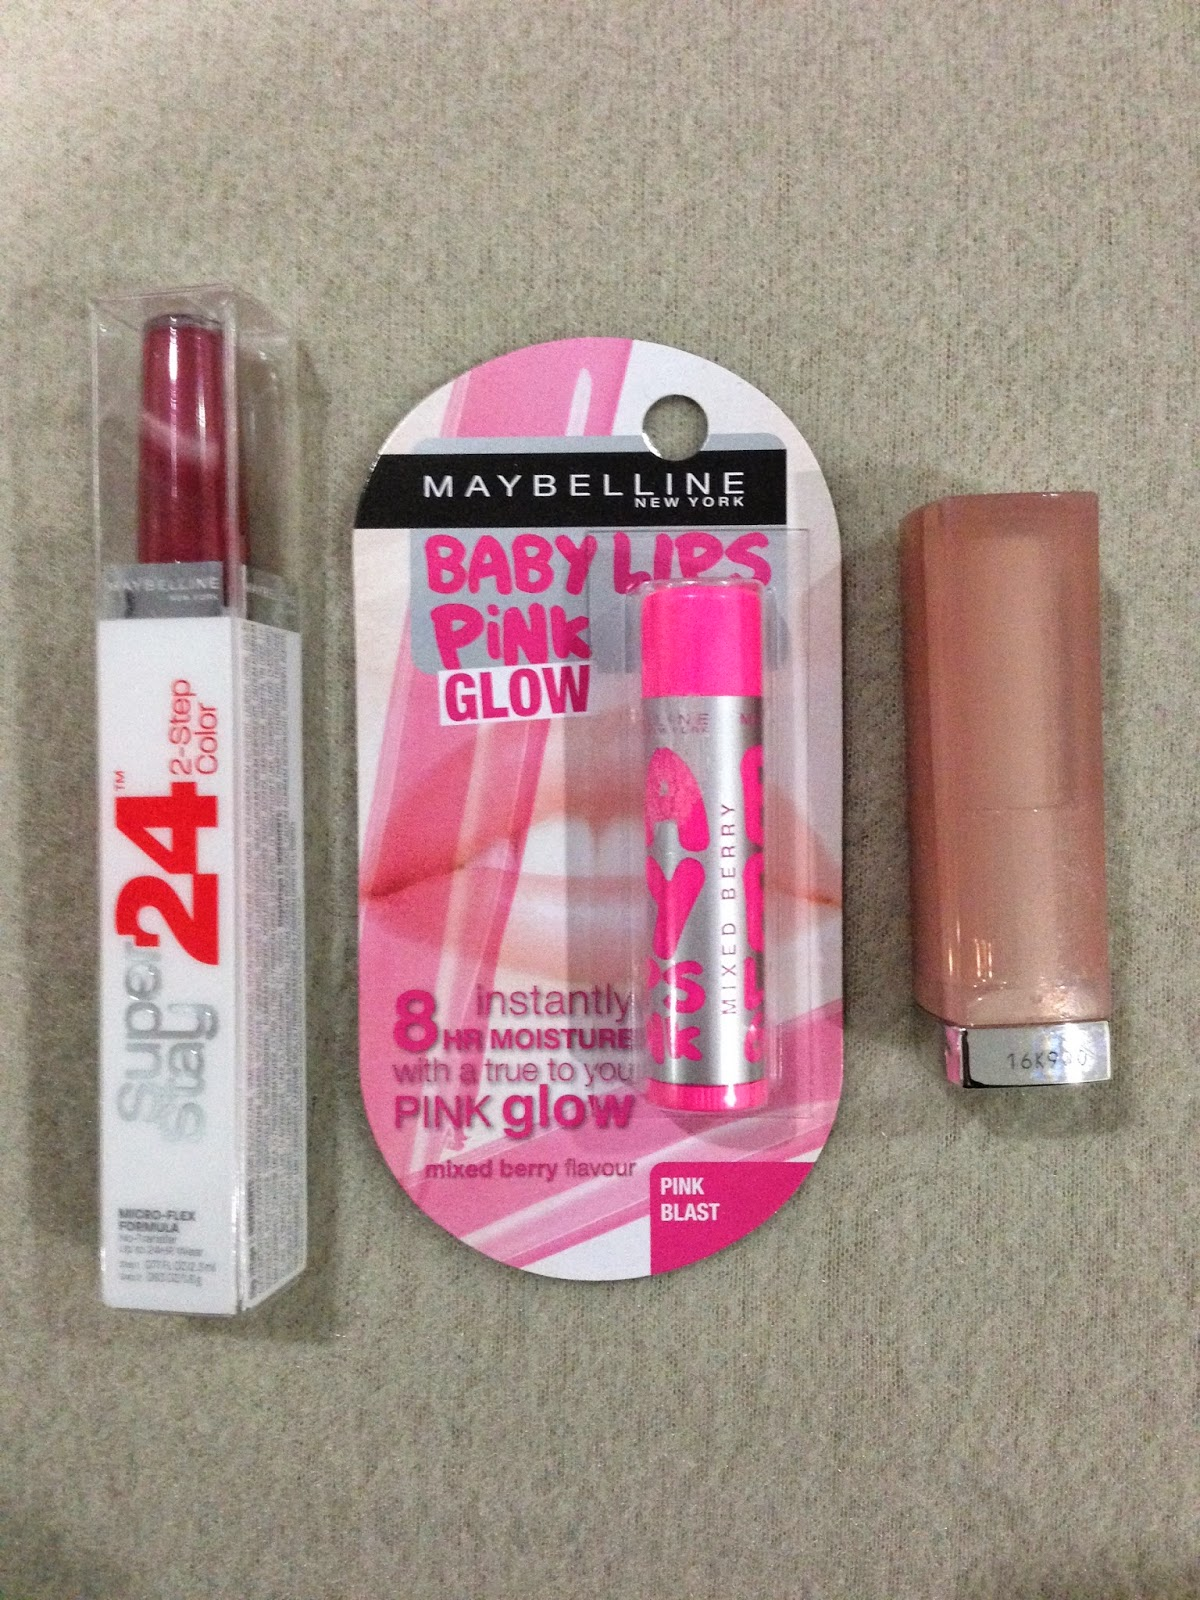 Maybelline The Baby Lips Pink Glow Lipbalm in shade Pink Blast; the Super Stay 24hr 2-Step Color in shade All Day Cherry and a Color Sensational lipstick from the Stripped Nudes Collection in shade 740 Coffee Craze.